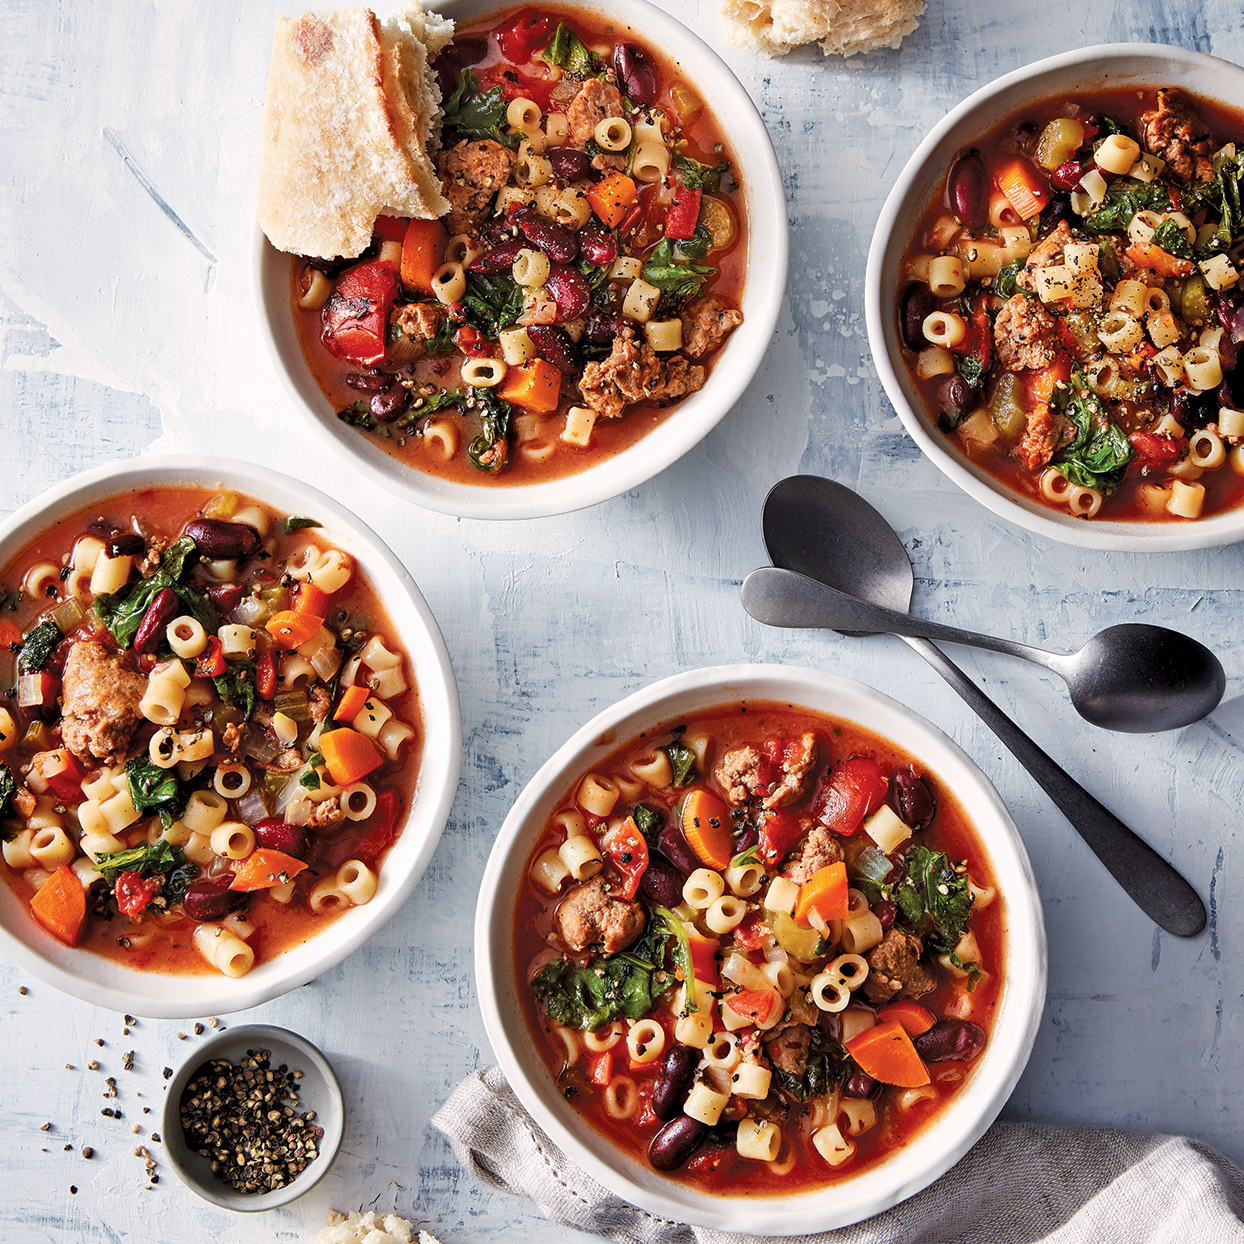 Adjust the heat level in the dish by choosing either hot or mild Italian sausage. You can add red pepper, too, to make it extra hot. Serve this slow-cooker minestrone with crusty bread, if desired.